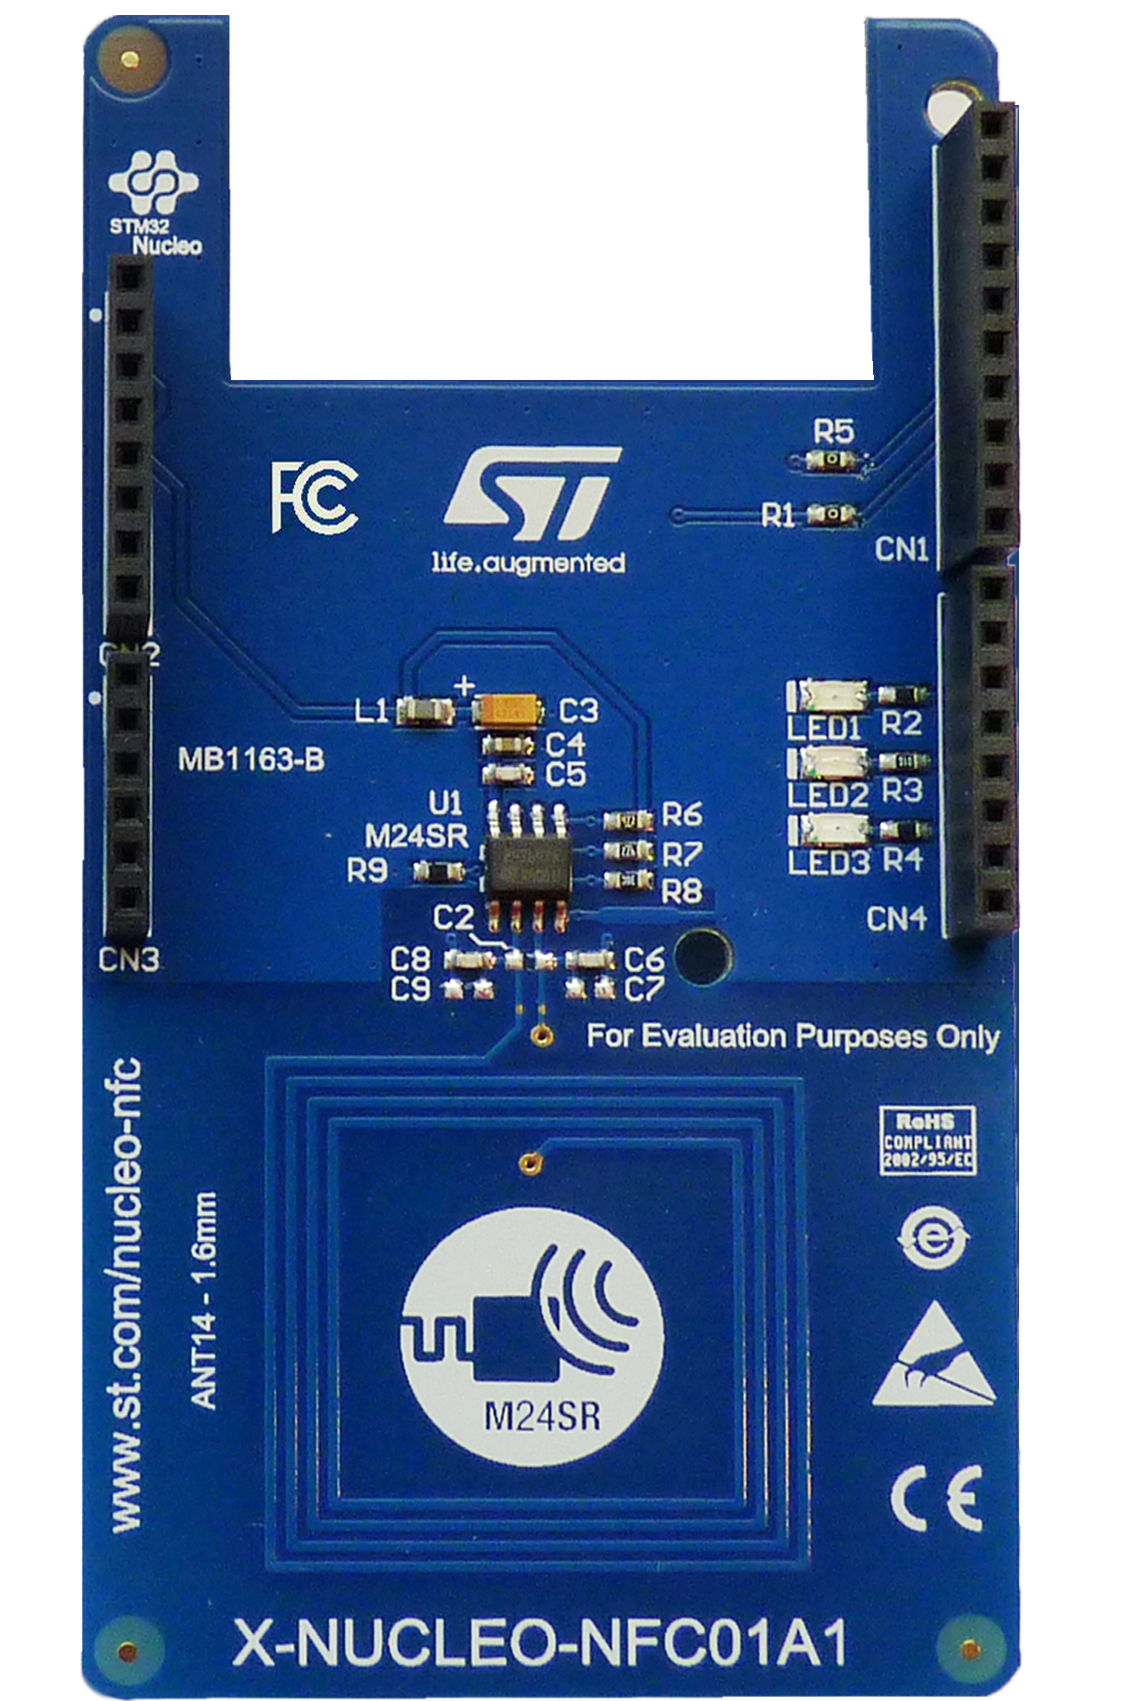 Dynamic NFC tag expansion board based on M24SR for STM32 Nucleo